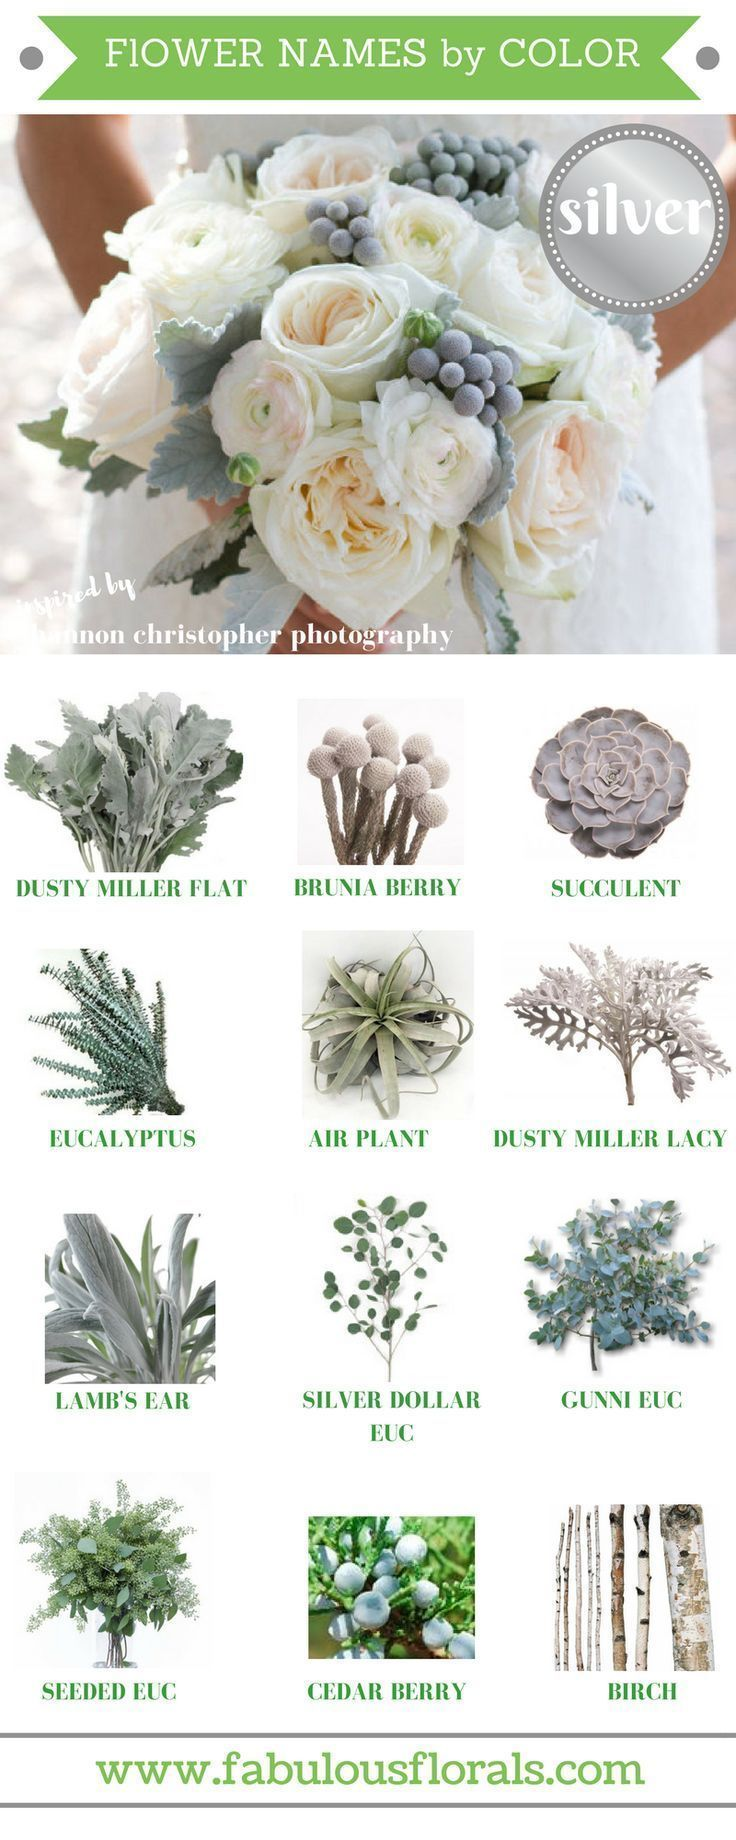 Natural Silver Grey Flower Accents Wedding Flower Ideas Non Traditional Wedding Flowers Wedding Flower Trends Diy Wedding Flowers Flower Names